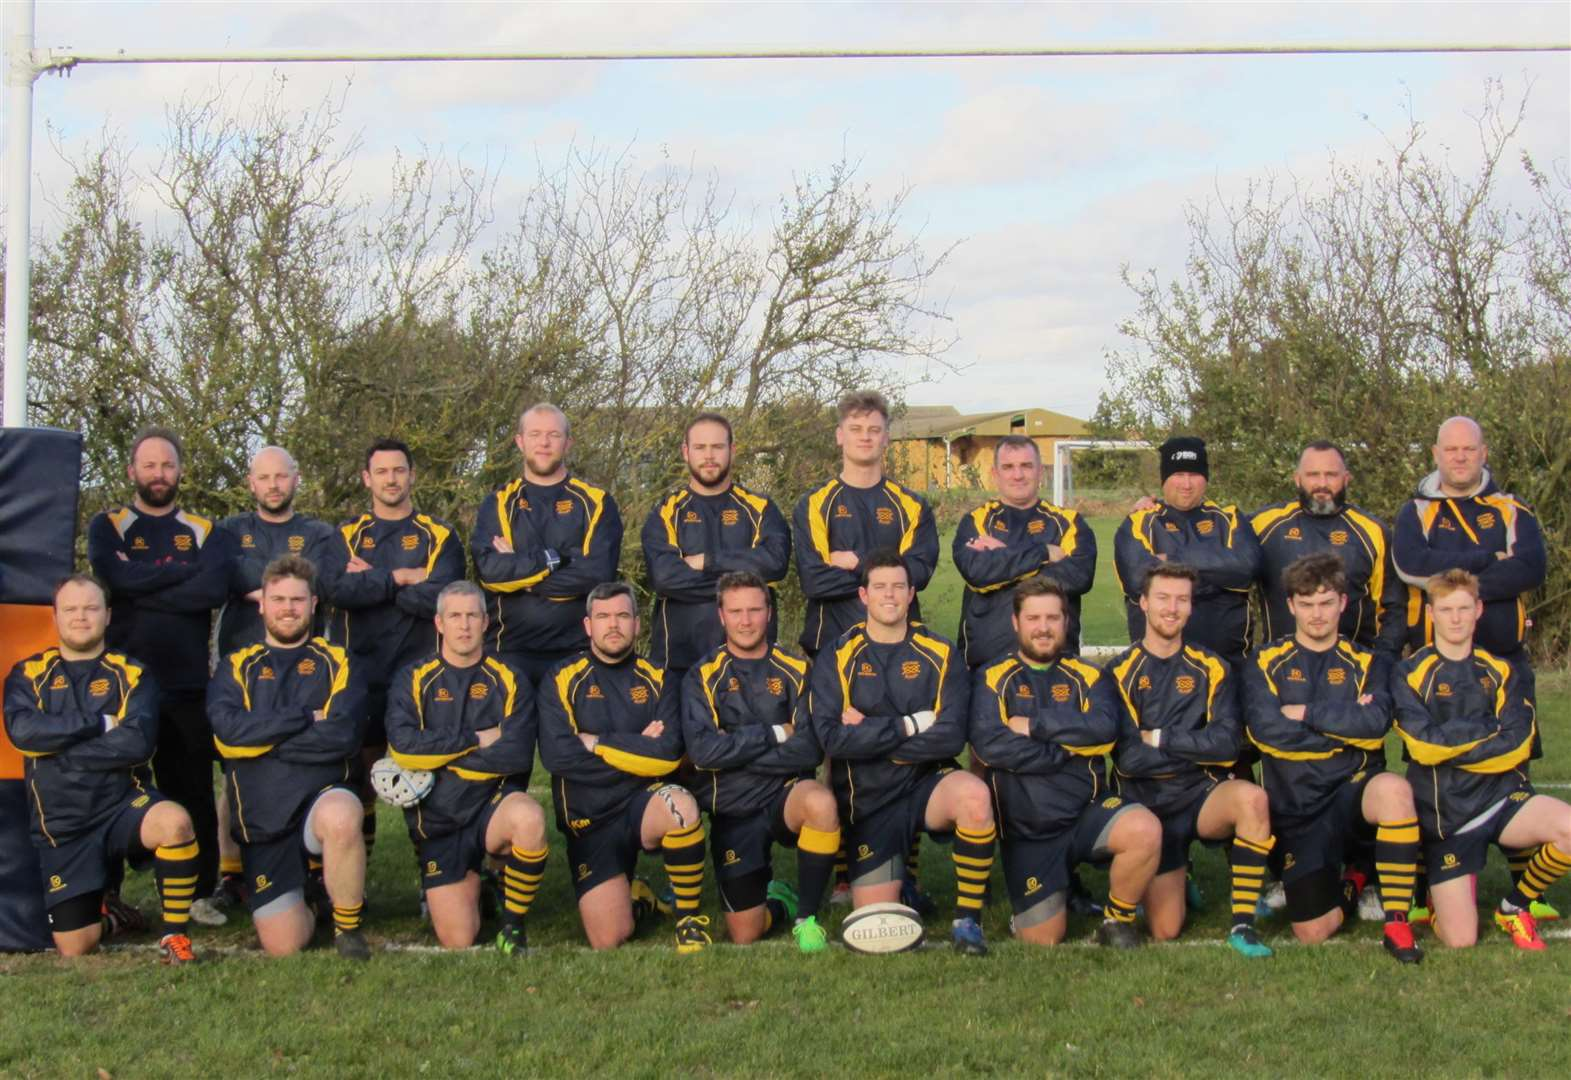 RUGBY: Tough times continue for division newcomers Bourne at Queens